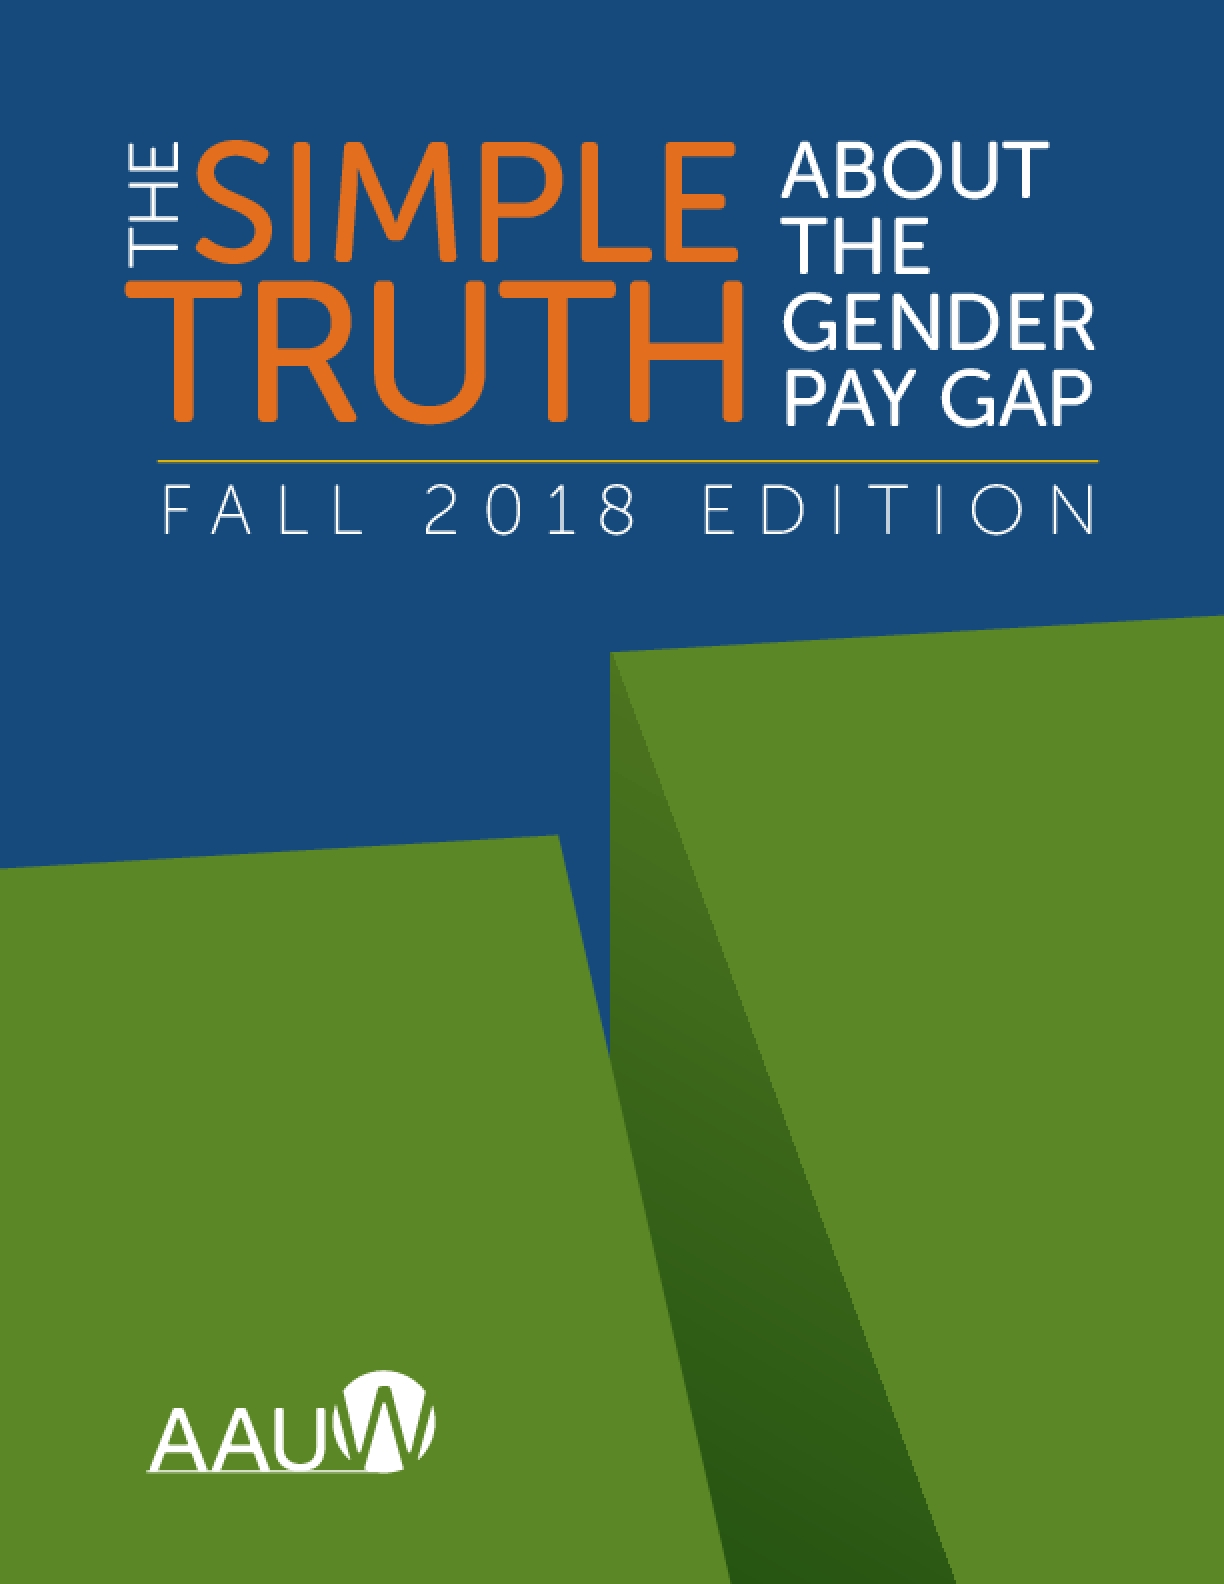 The Simple Truth About the Gender Pay Gap - Fall 2018 Edition